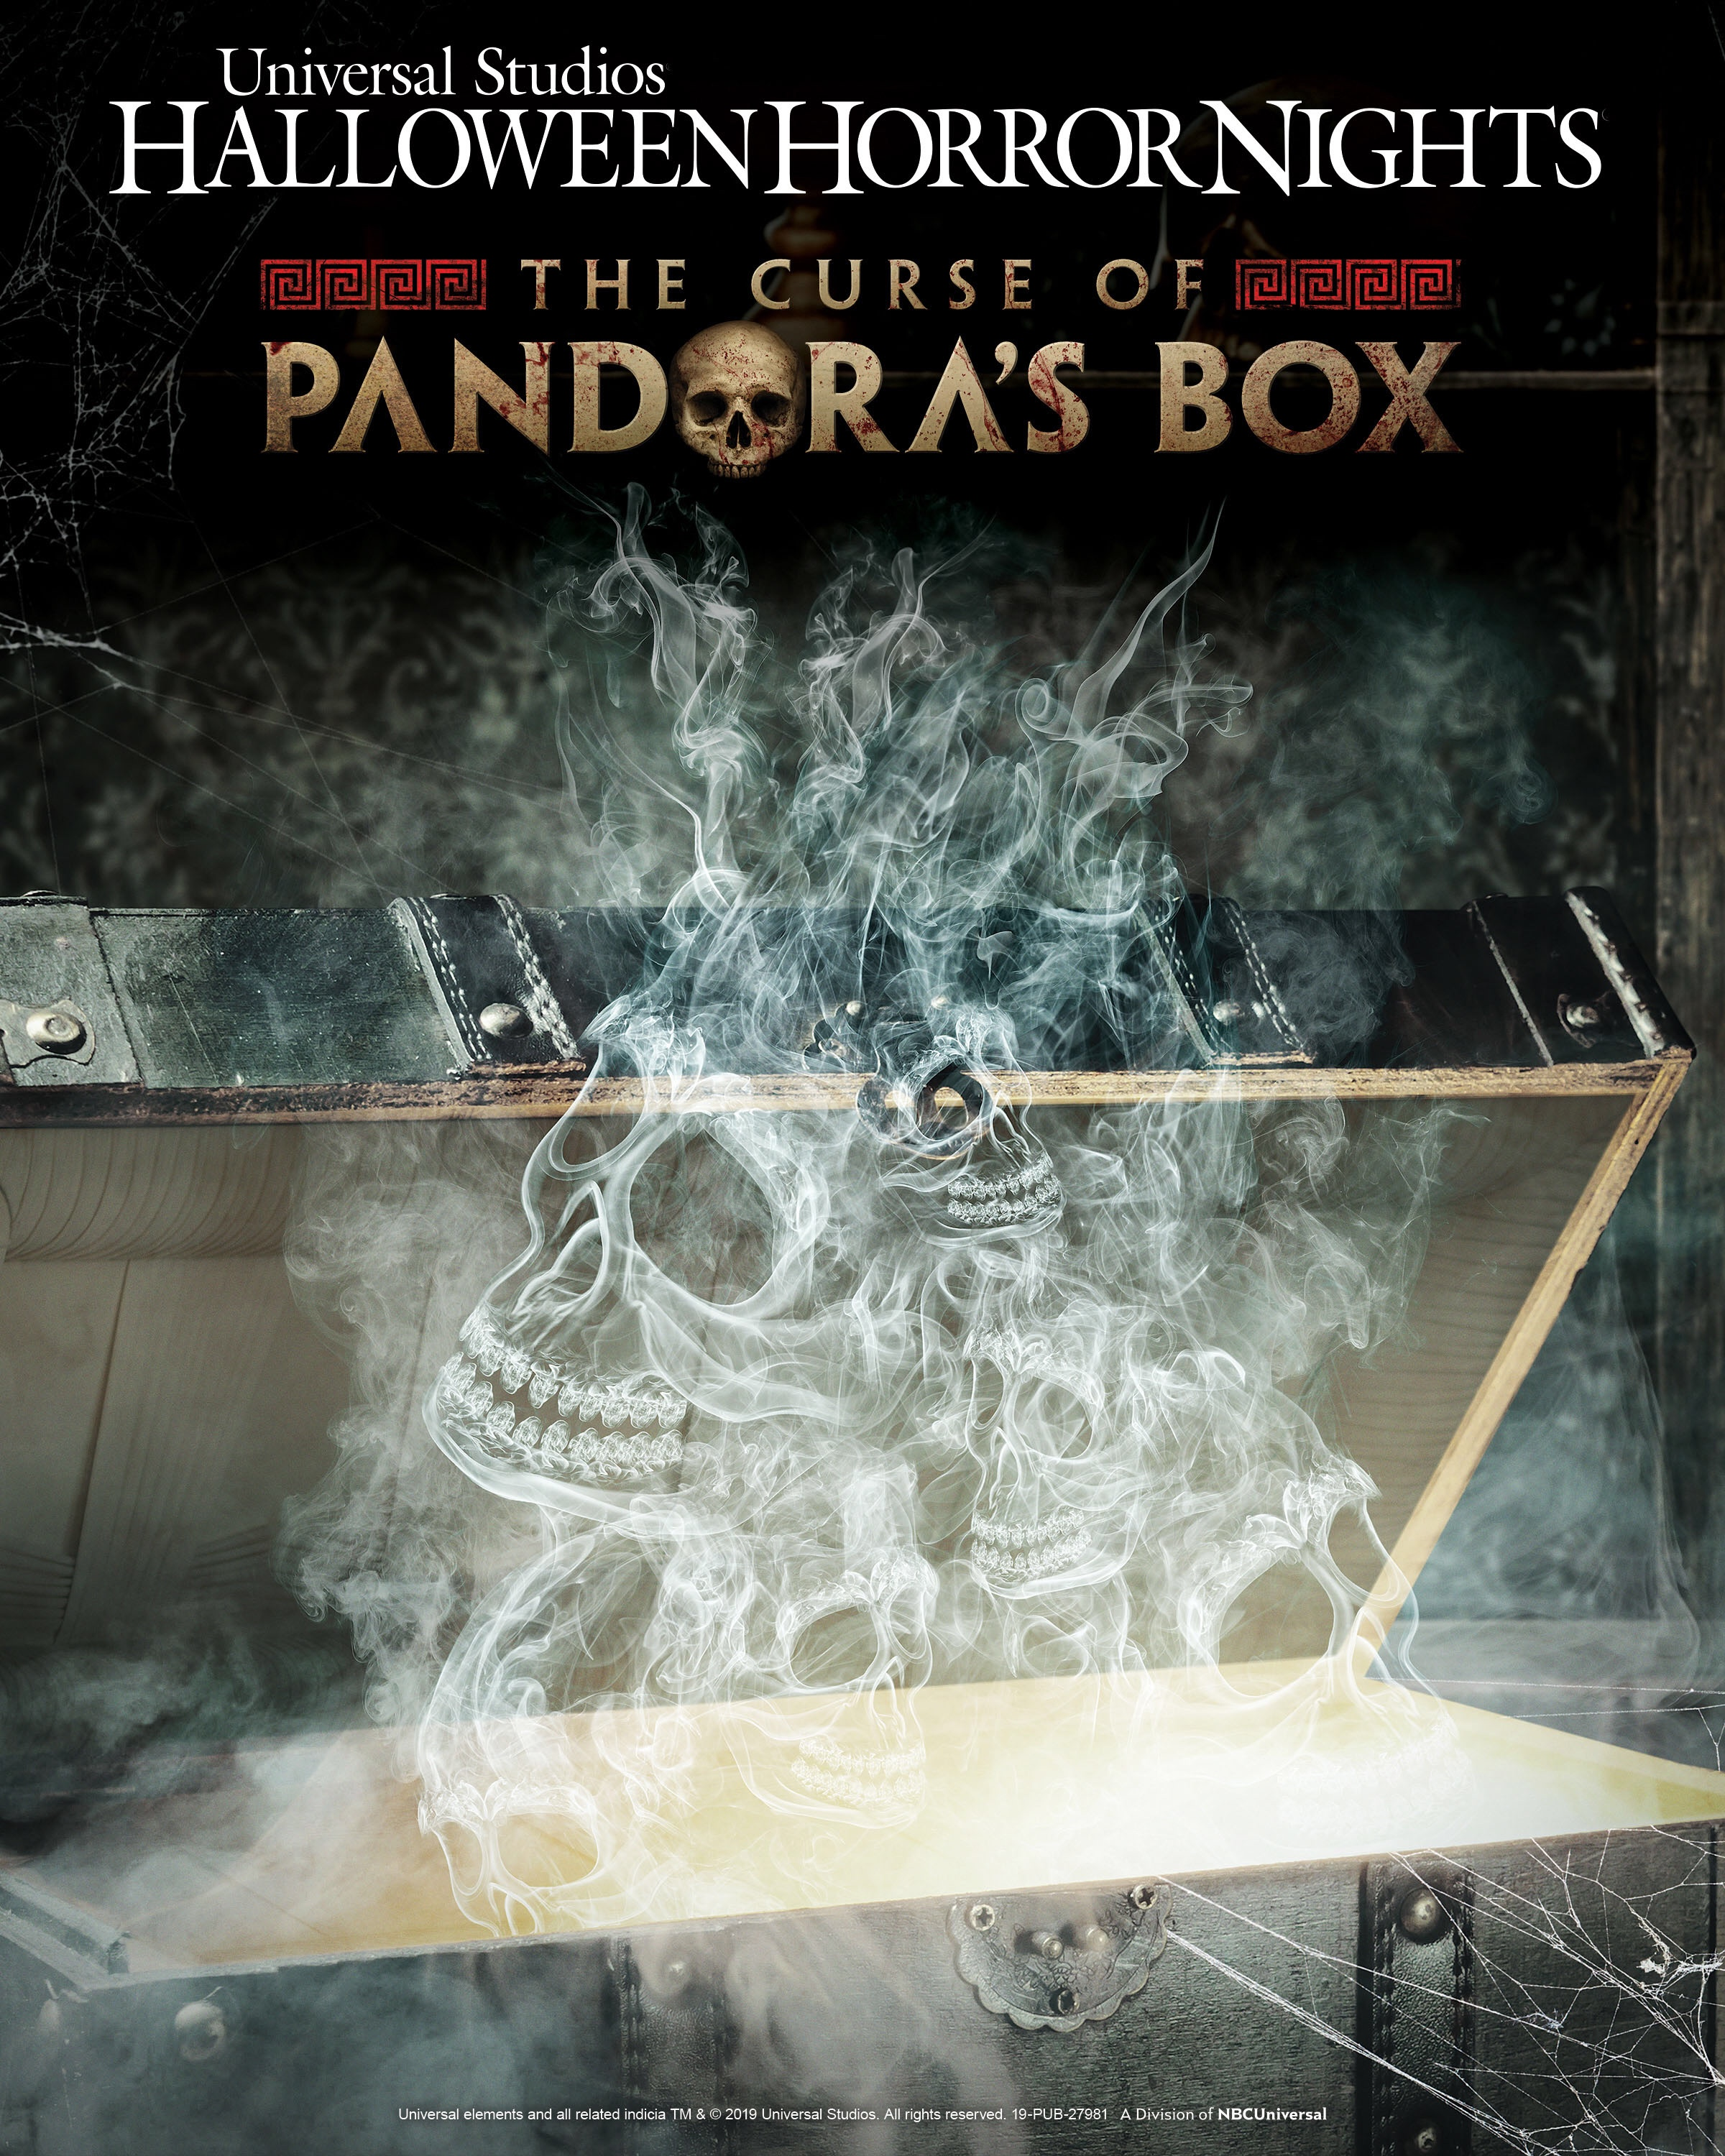 The Curse of Pandora's Box announced for Halloween Horror Nights 2019